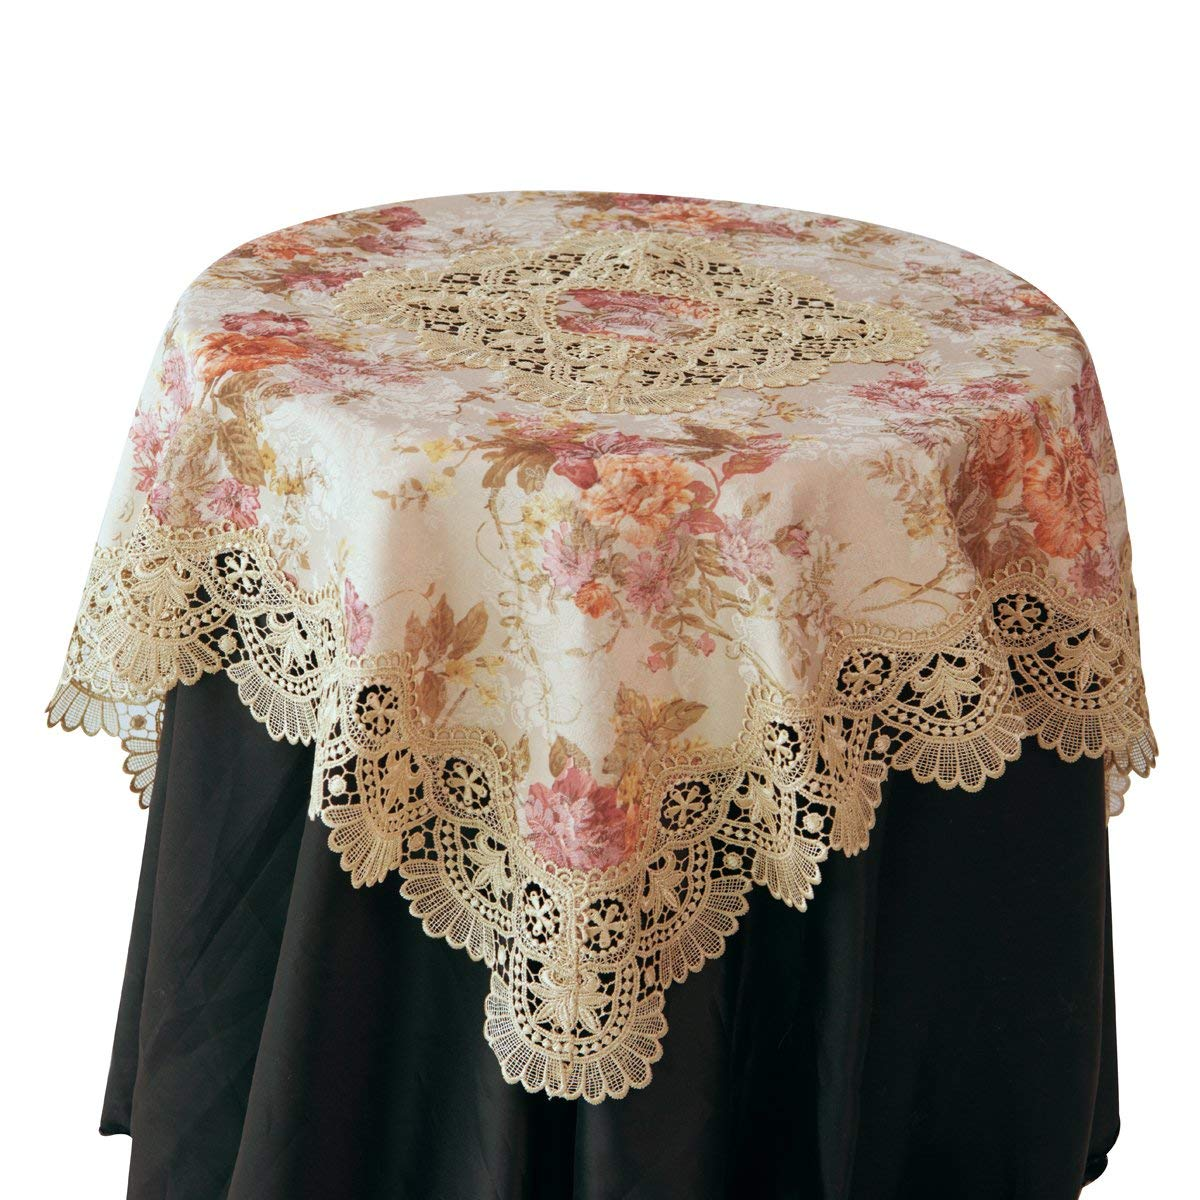 beige lace tablecloth with floral printed round accent jacquard fabric elegant tablecover for home decor square coffee table cloth topper patterns sewing arcadia furniture small